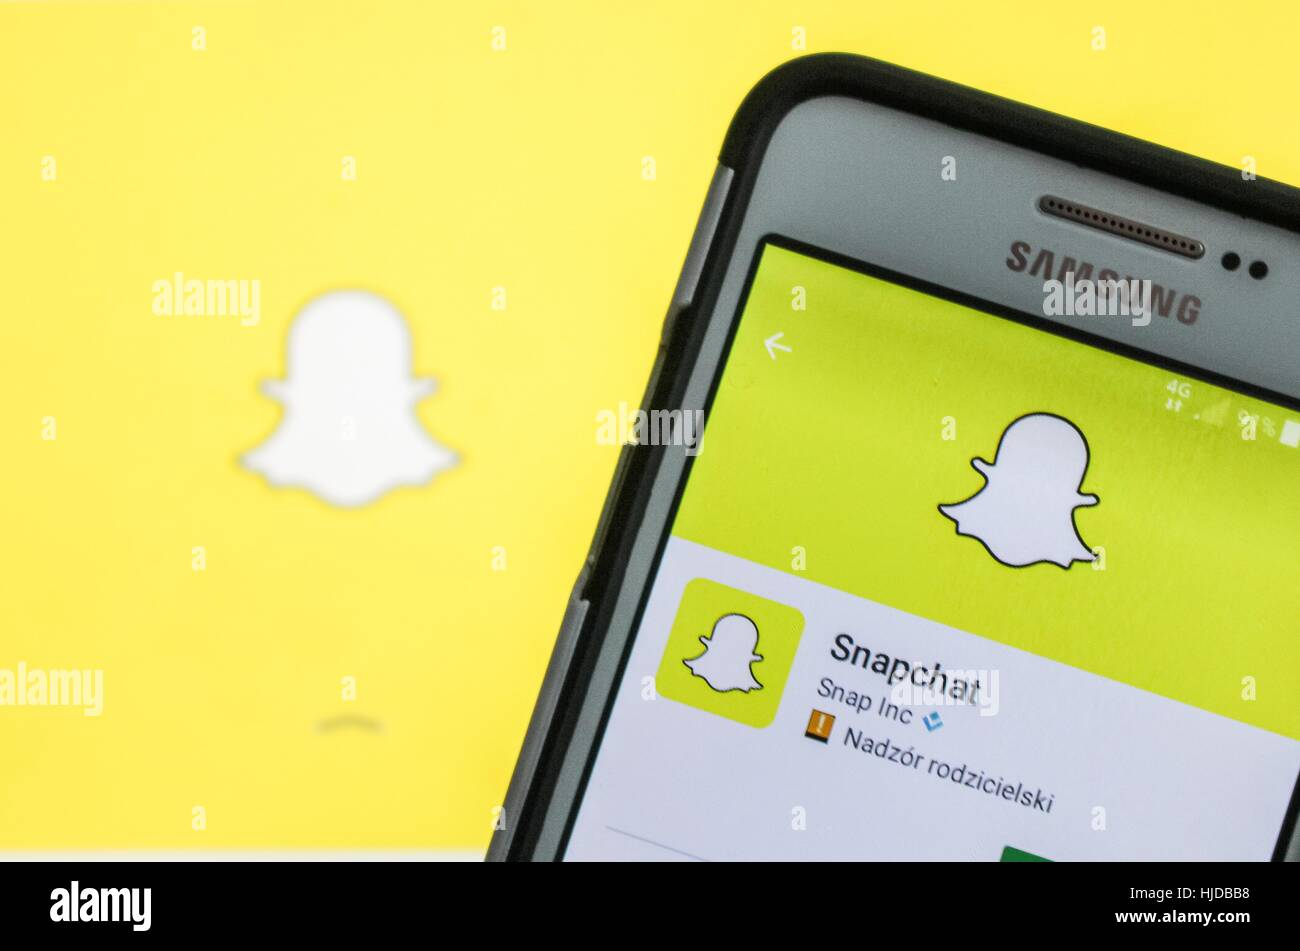 Man holding Samsung smartphone in hand, with Snapchat app